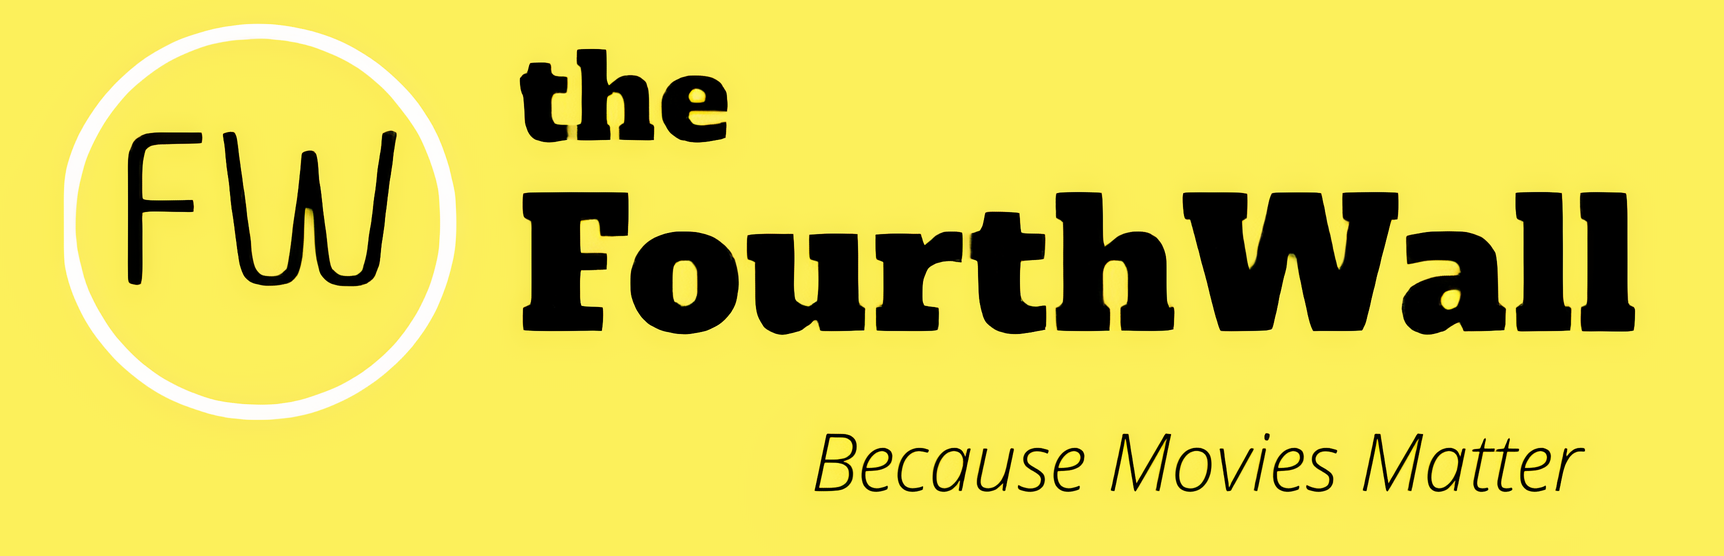 The Fourthwall